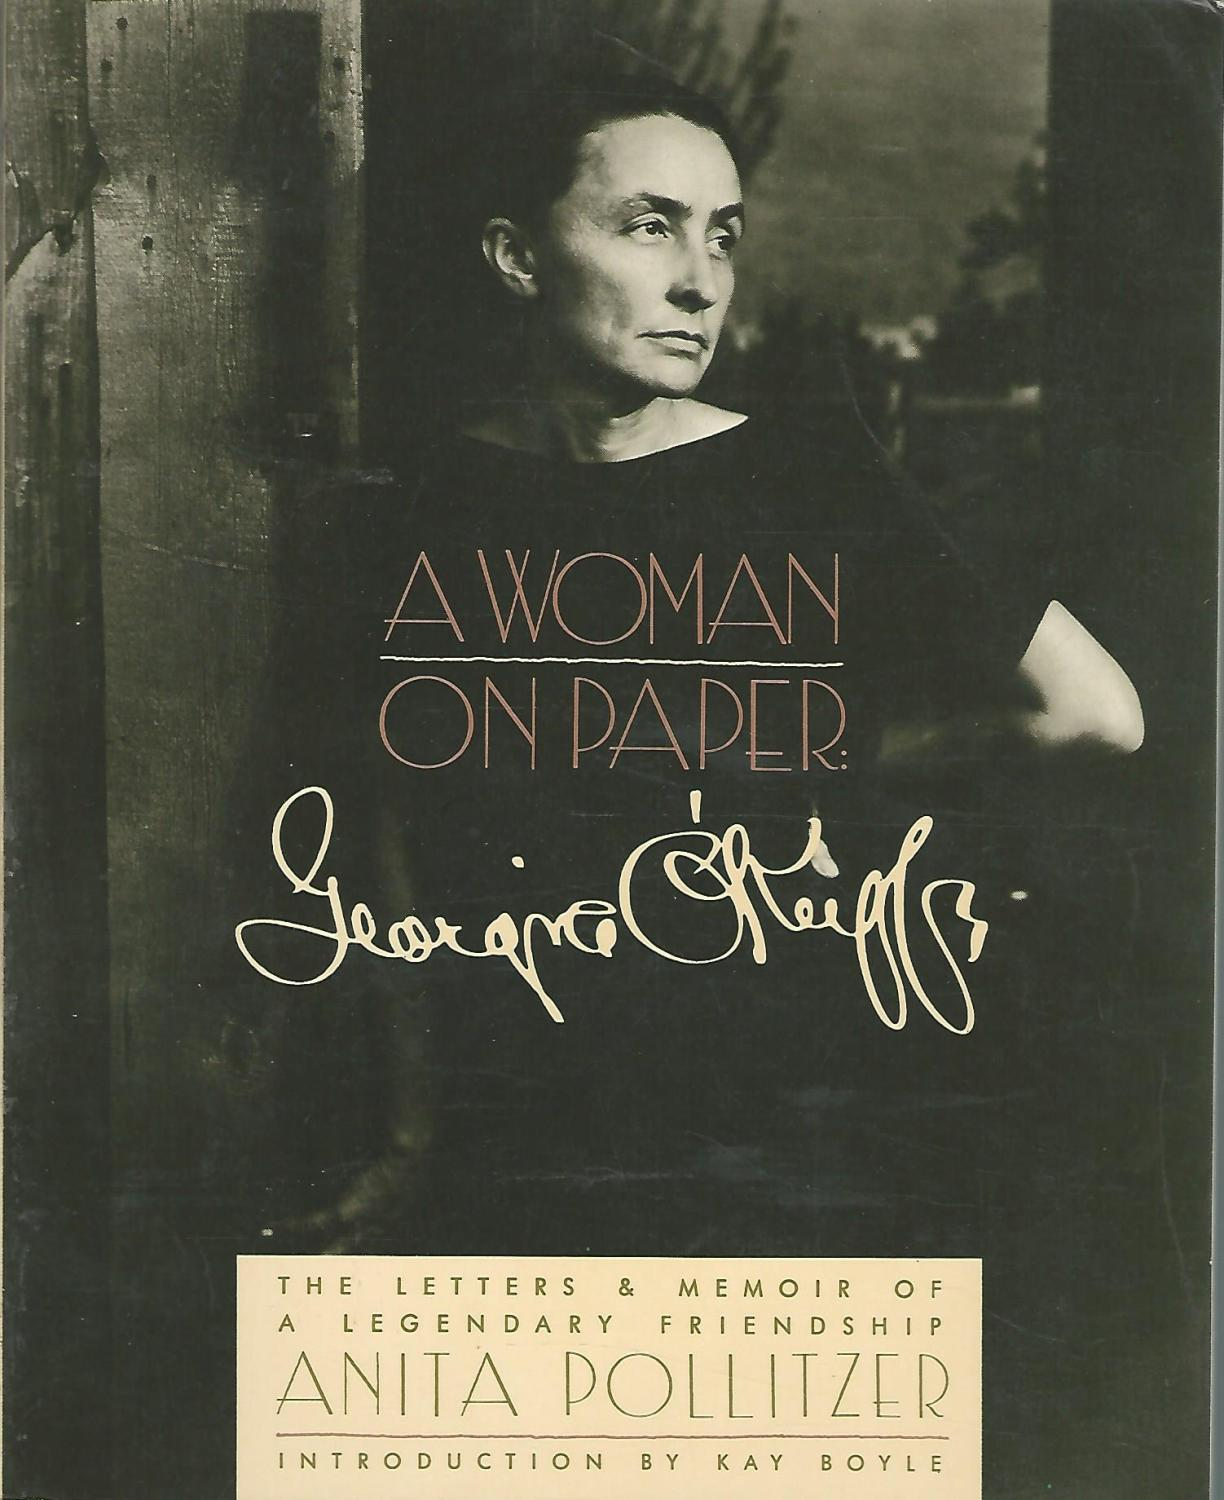 A Woman on Paper: Georgia O'Keeffe: The Letters and Memoir of a Legendary Friendship - O'Keeffe, Georgia) Pollitzer, Anita